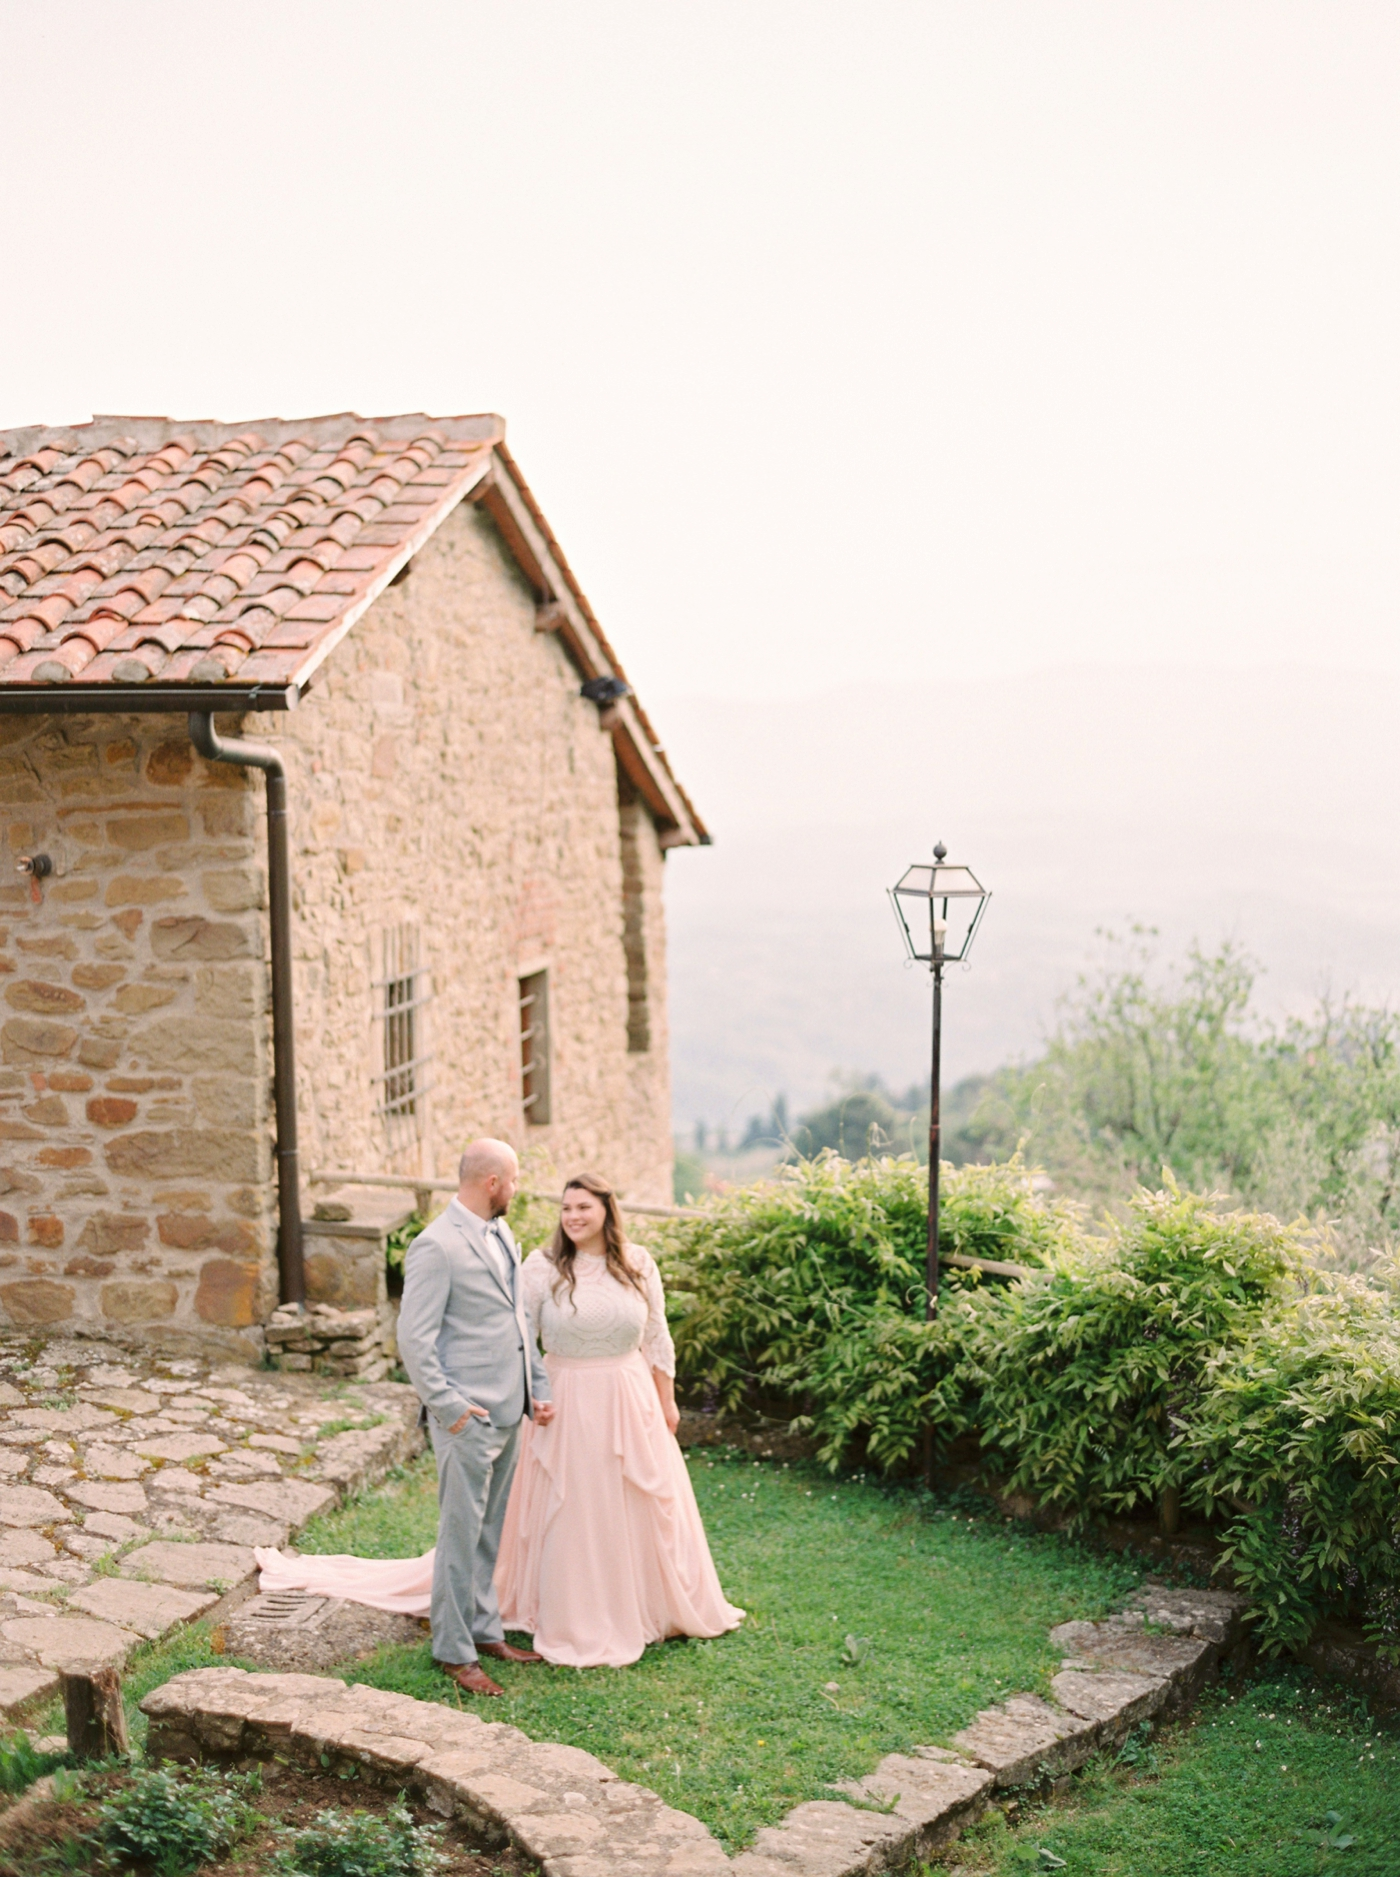 tuscany wedding photographers | bride and groom in a tuscan countryside | justine milton fine art film photographer